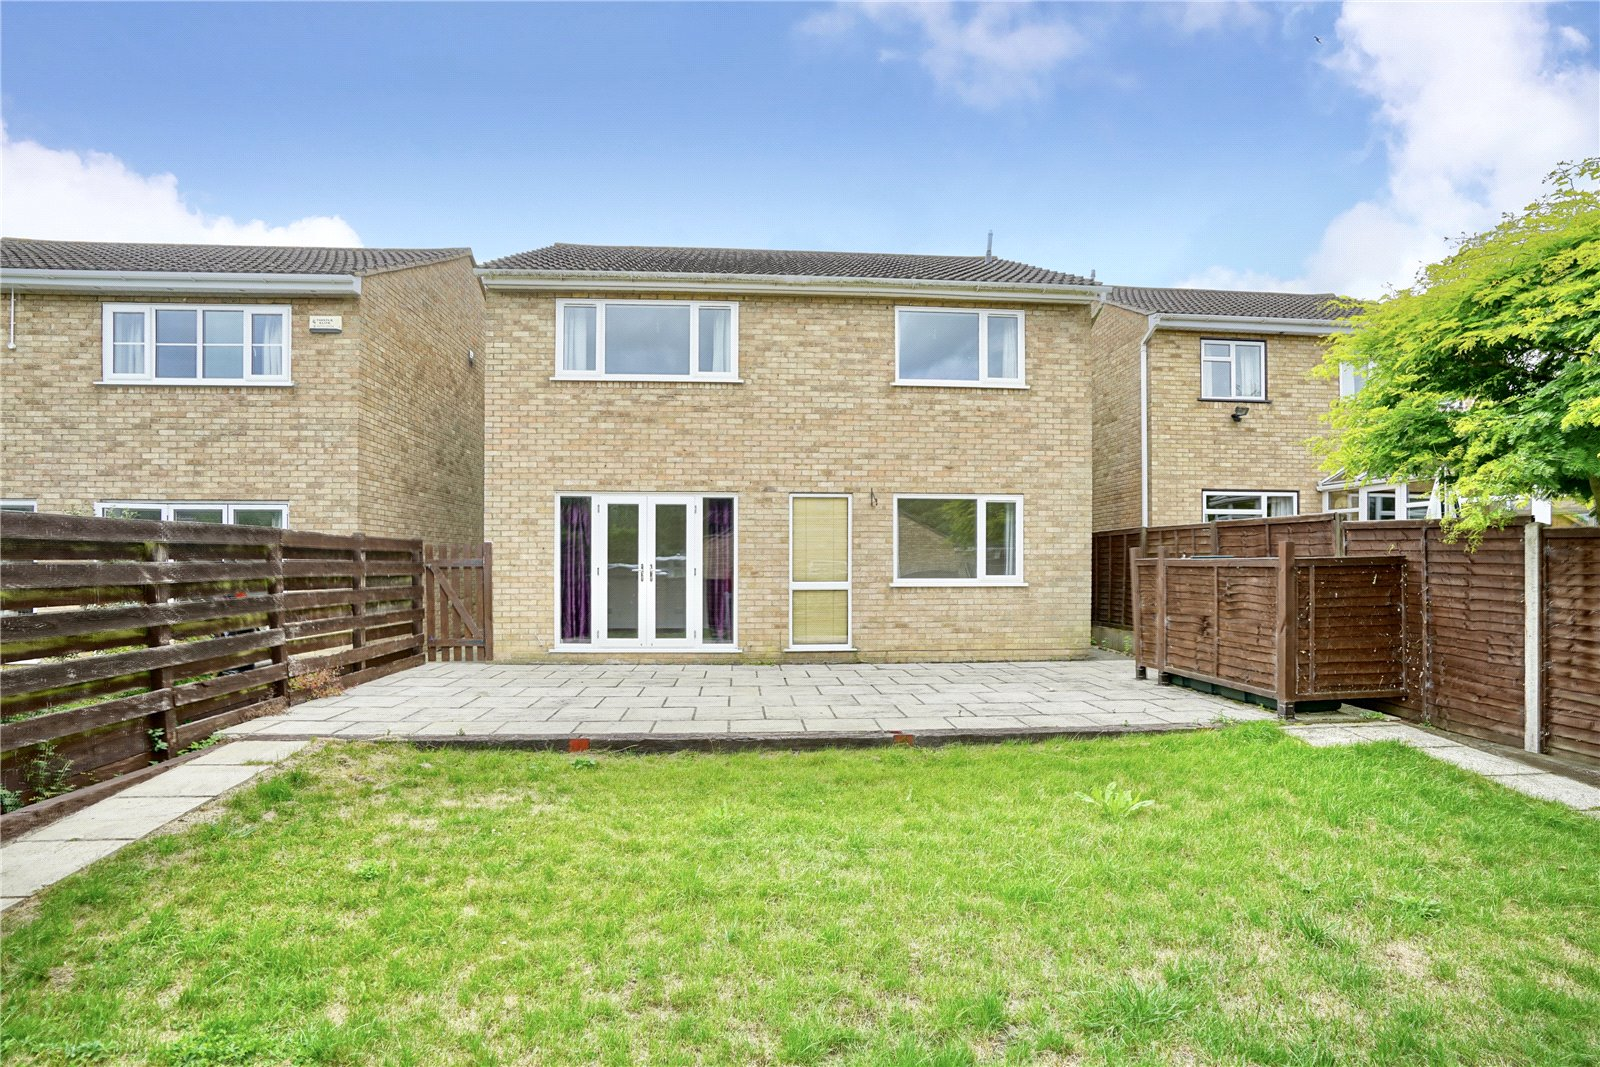 4 bed house for sale in Lakeside Close, Perry 9